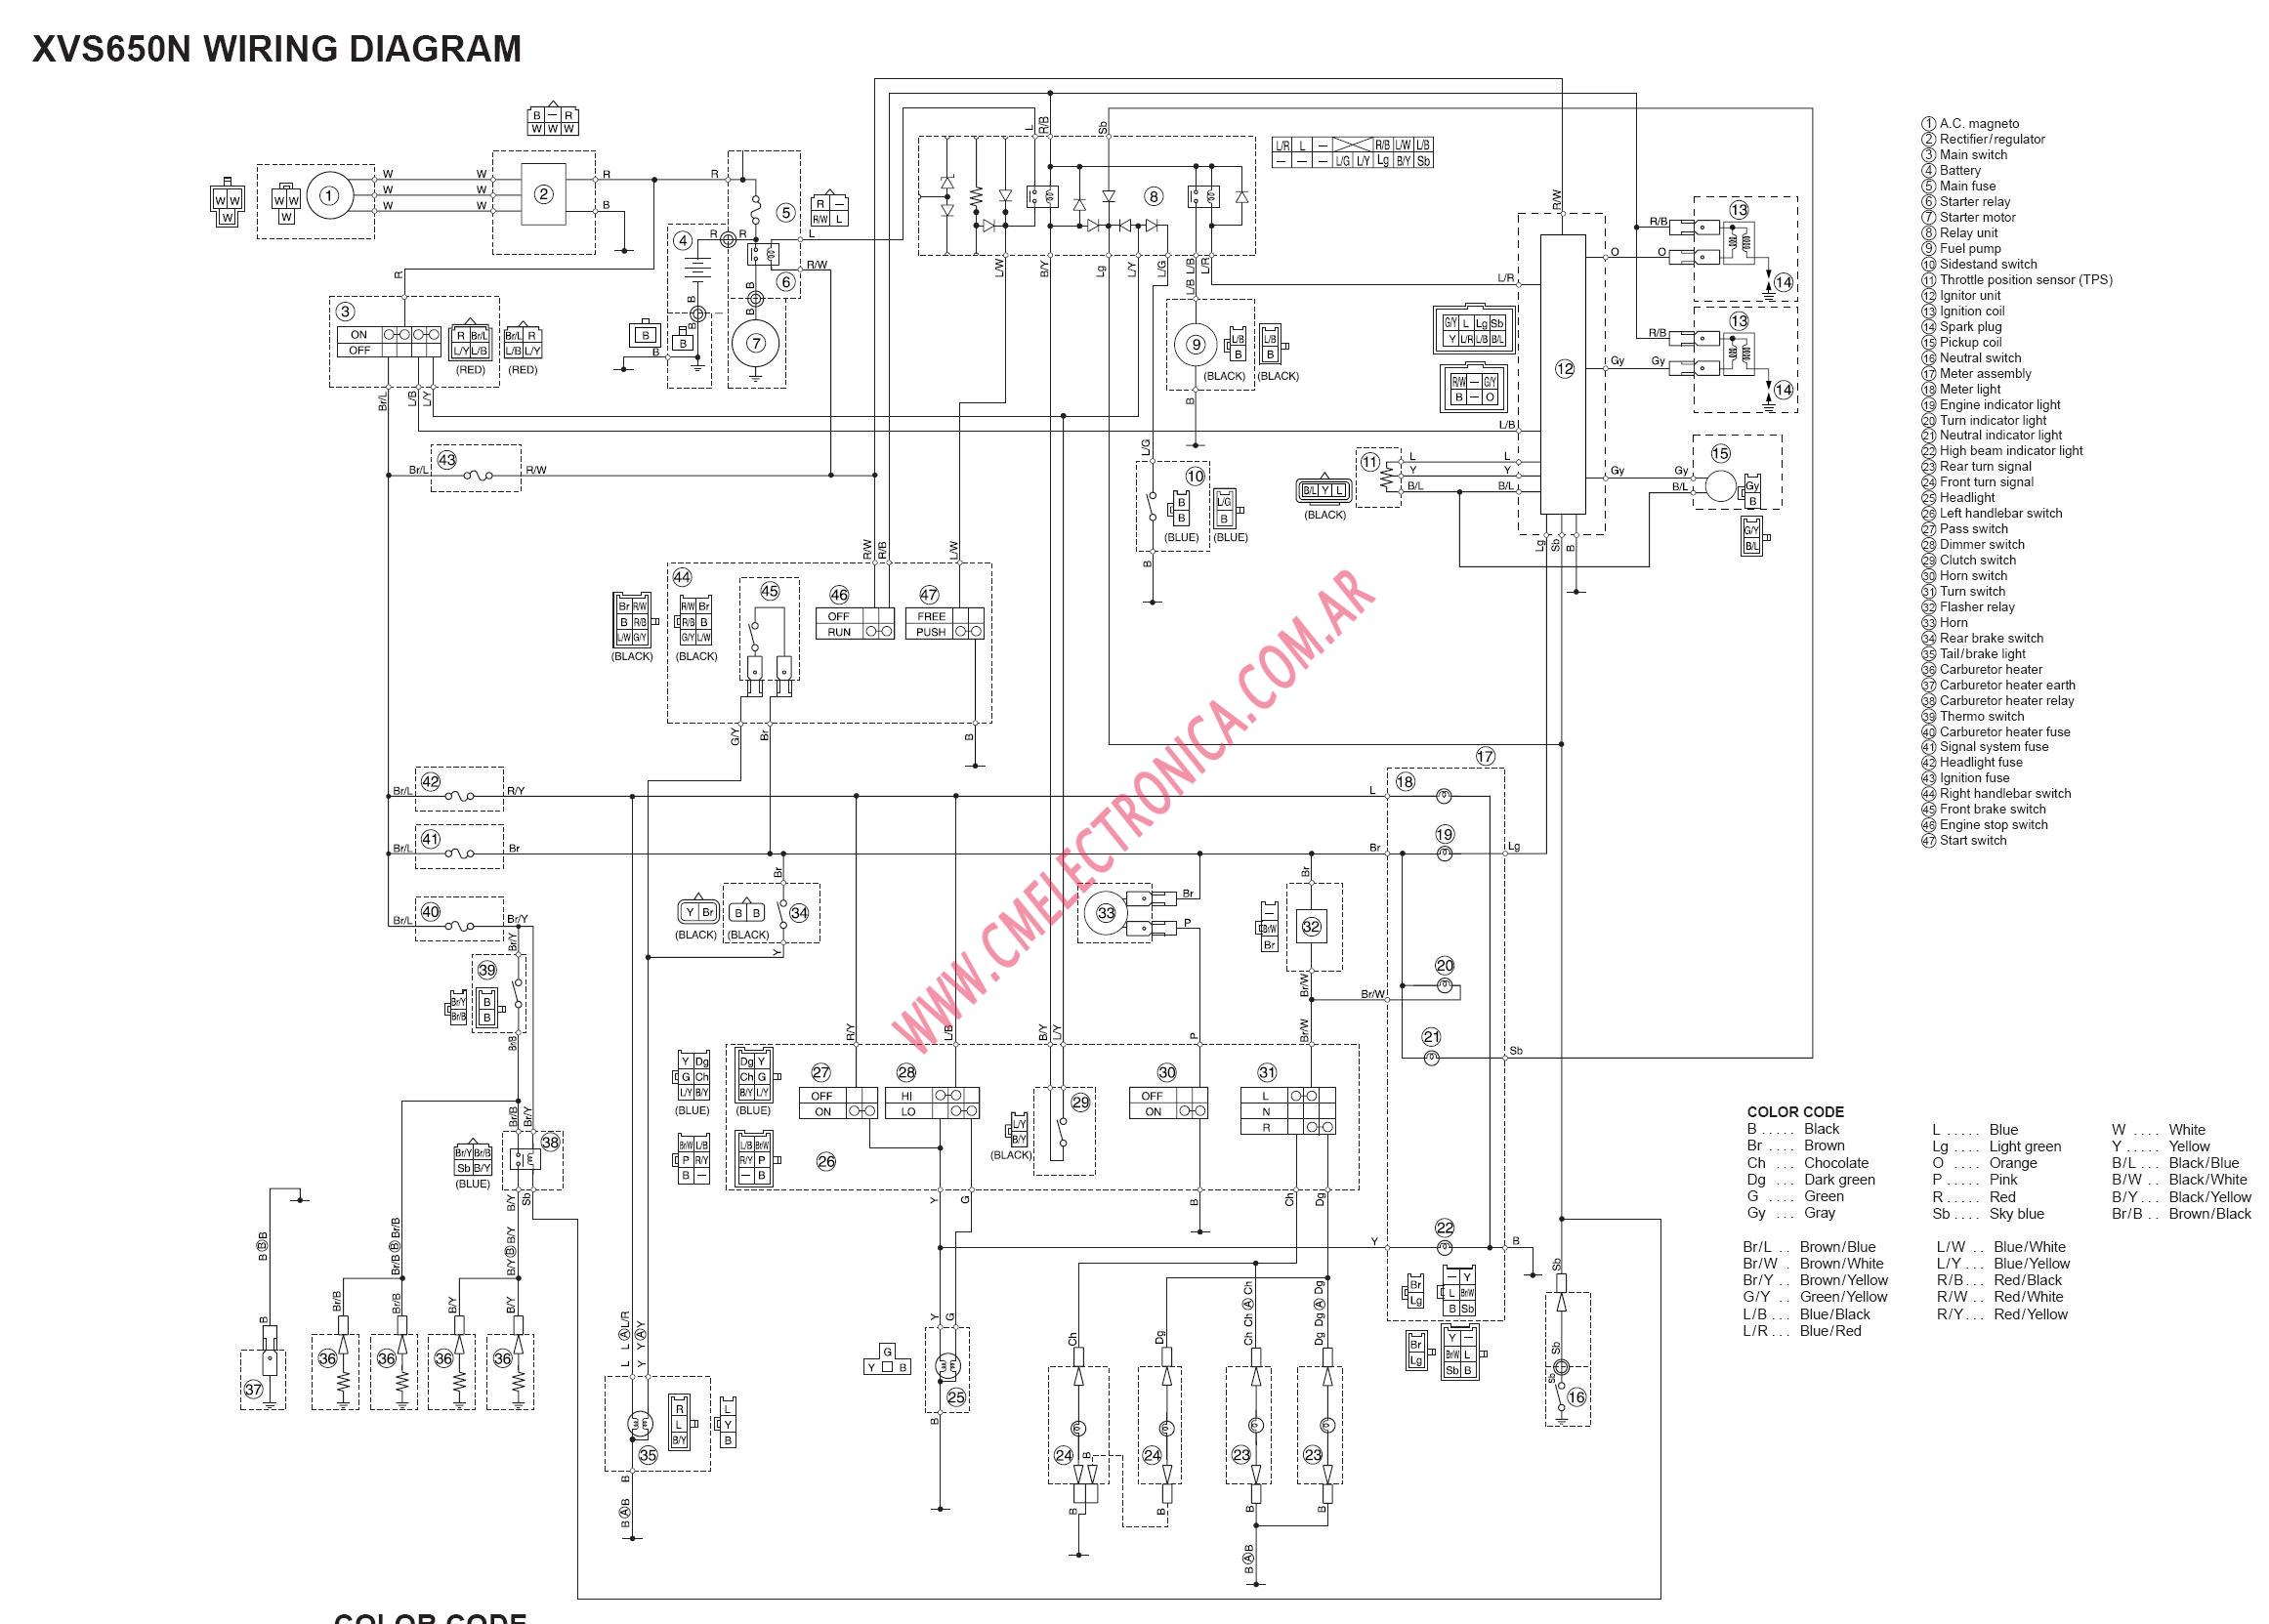 yamaha dragstar xvs650 2000 wiring diagram for 2007 gsxr 600 the wiring diagram readingrat net 2000 yamaha yzf600r wiring diagram at mifinder.co